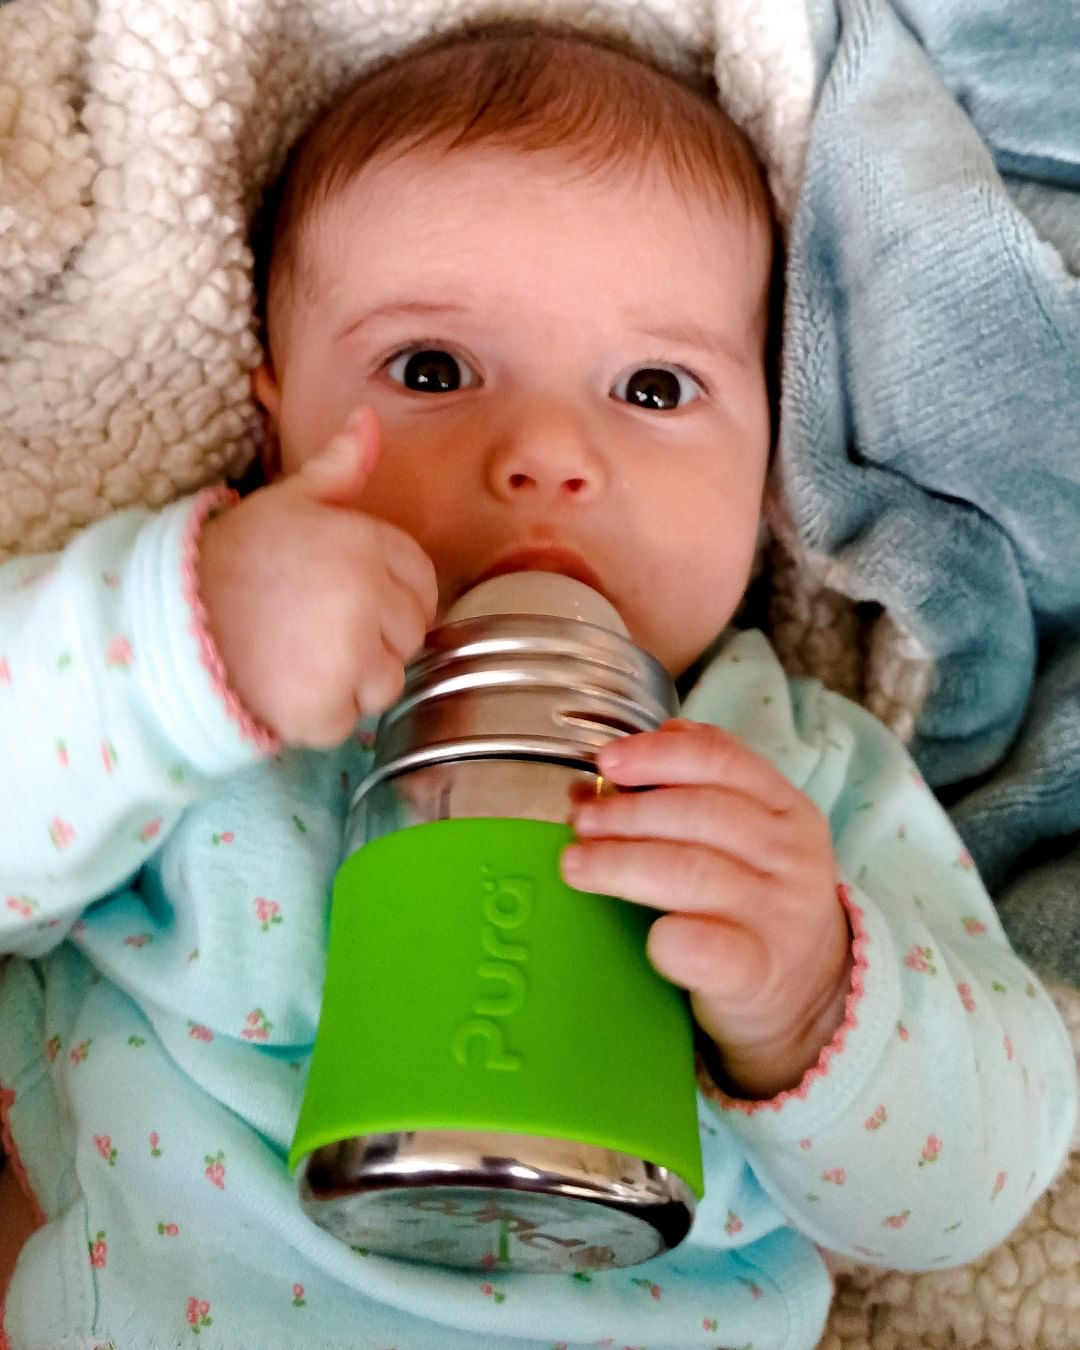 Eco-friendly baby drinking from Pura stainless steel bottle - source Pura Instagram